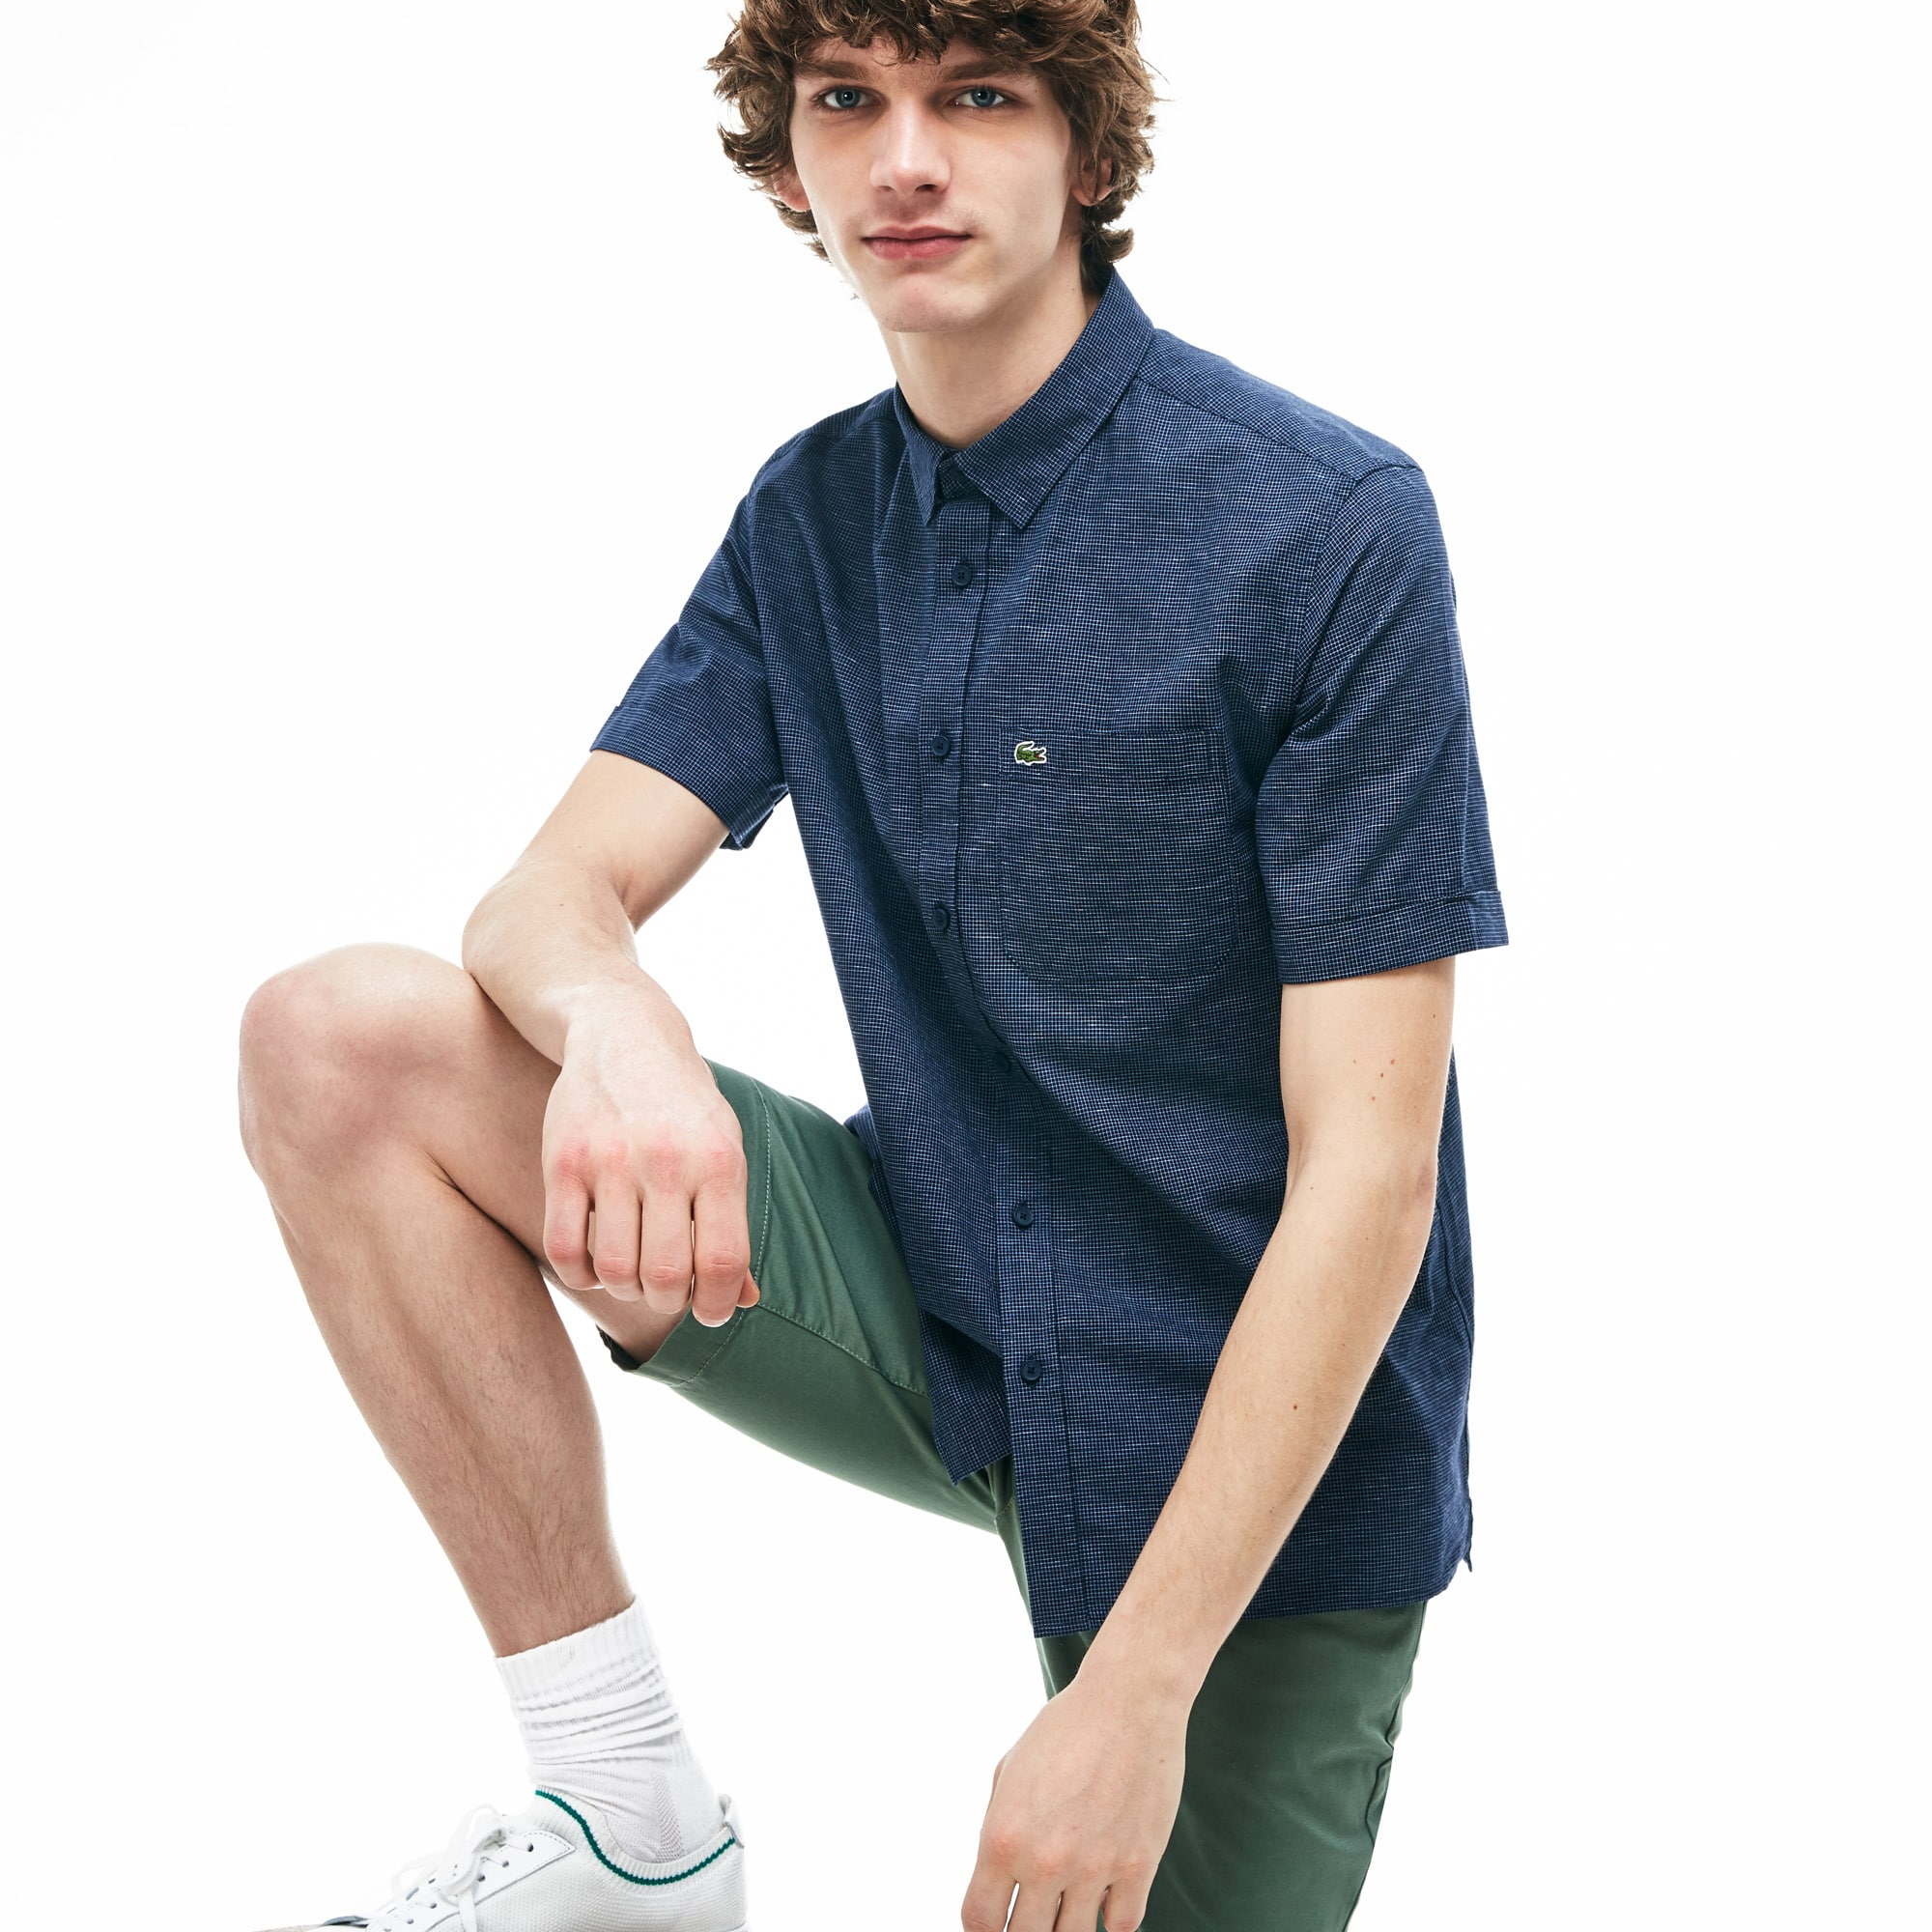 c5ec12a002 Shirts for men | Men's fashion | LACOSTE